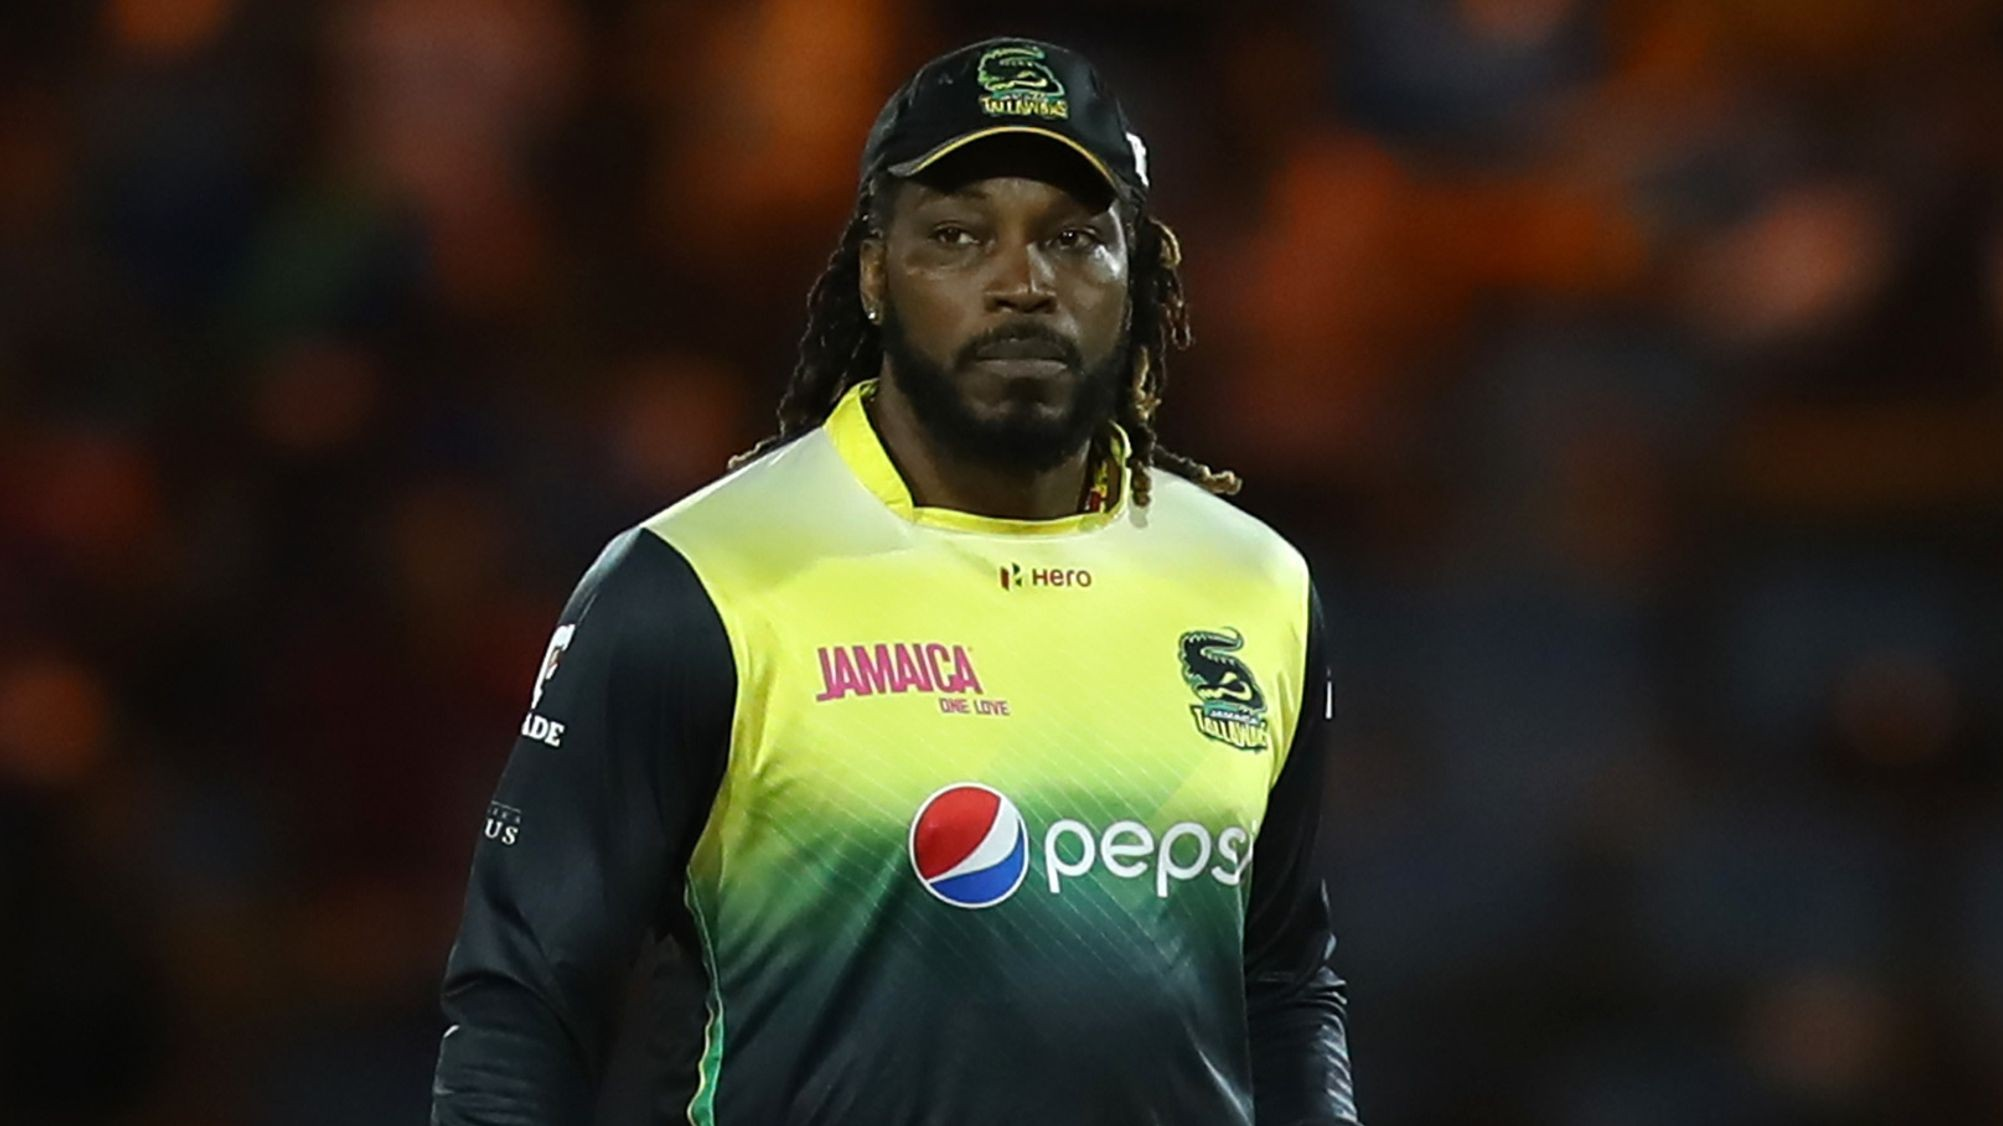 CWI chief confirms that Chris Gayle might be penalized for calling Ramnaresh Sarwan